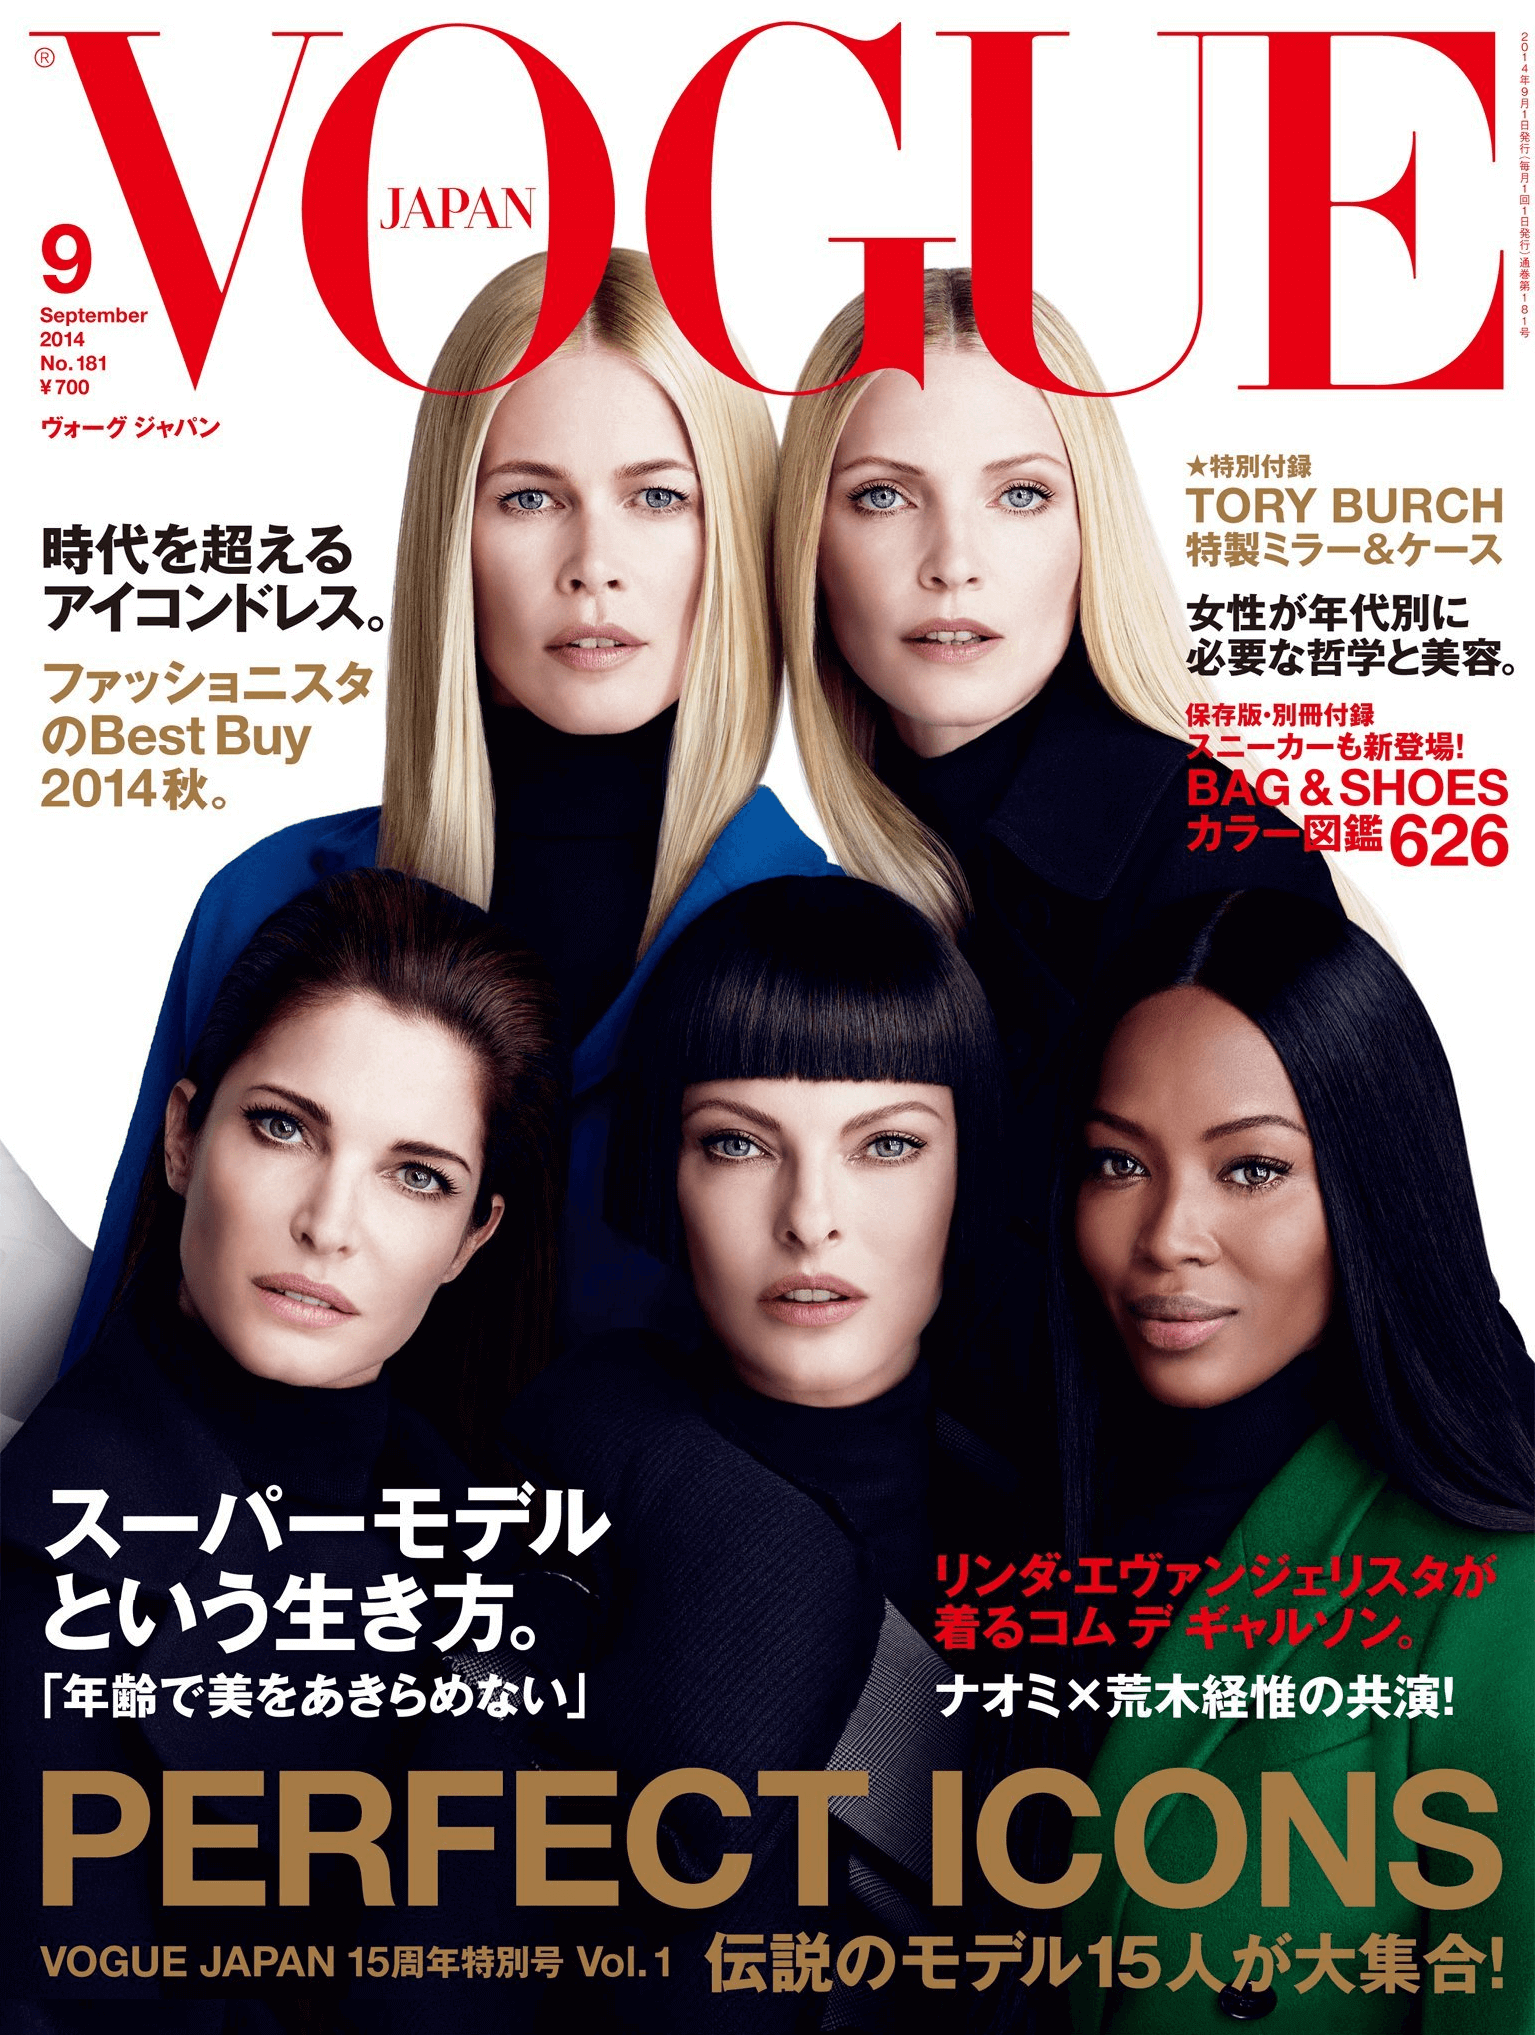 Vogue Japan September 2014 cover: Perfect Icons by Luigi & Iango